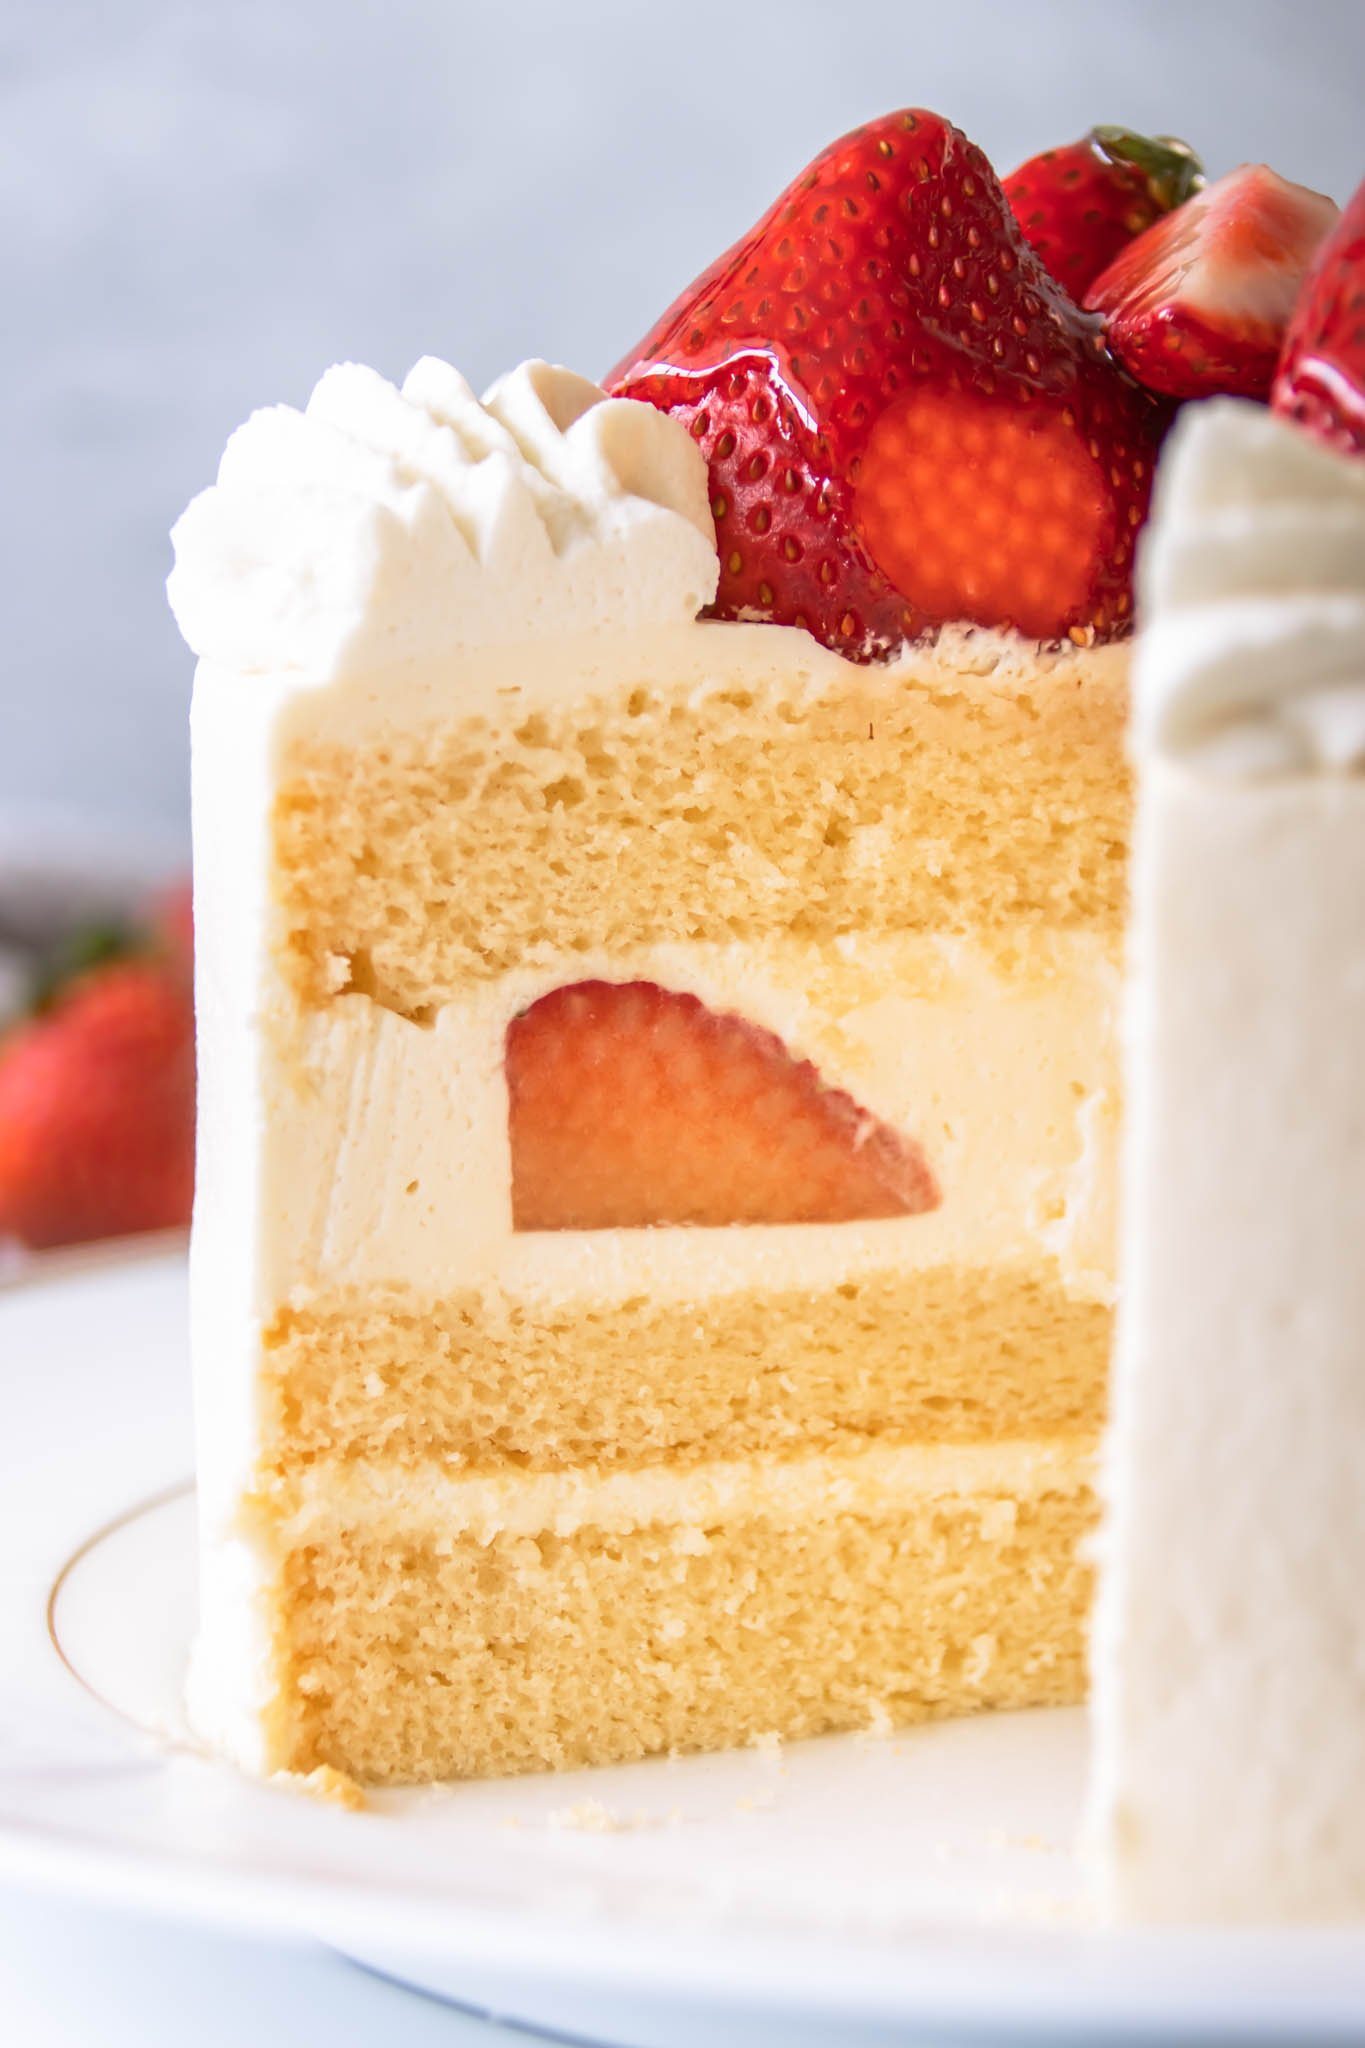 Japanese strawberry shortcake made with vanilla sponge cake layers filled with whipped cream and fresh strawberries